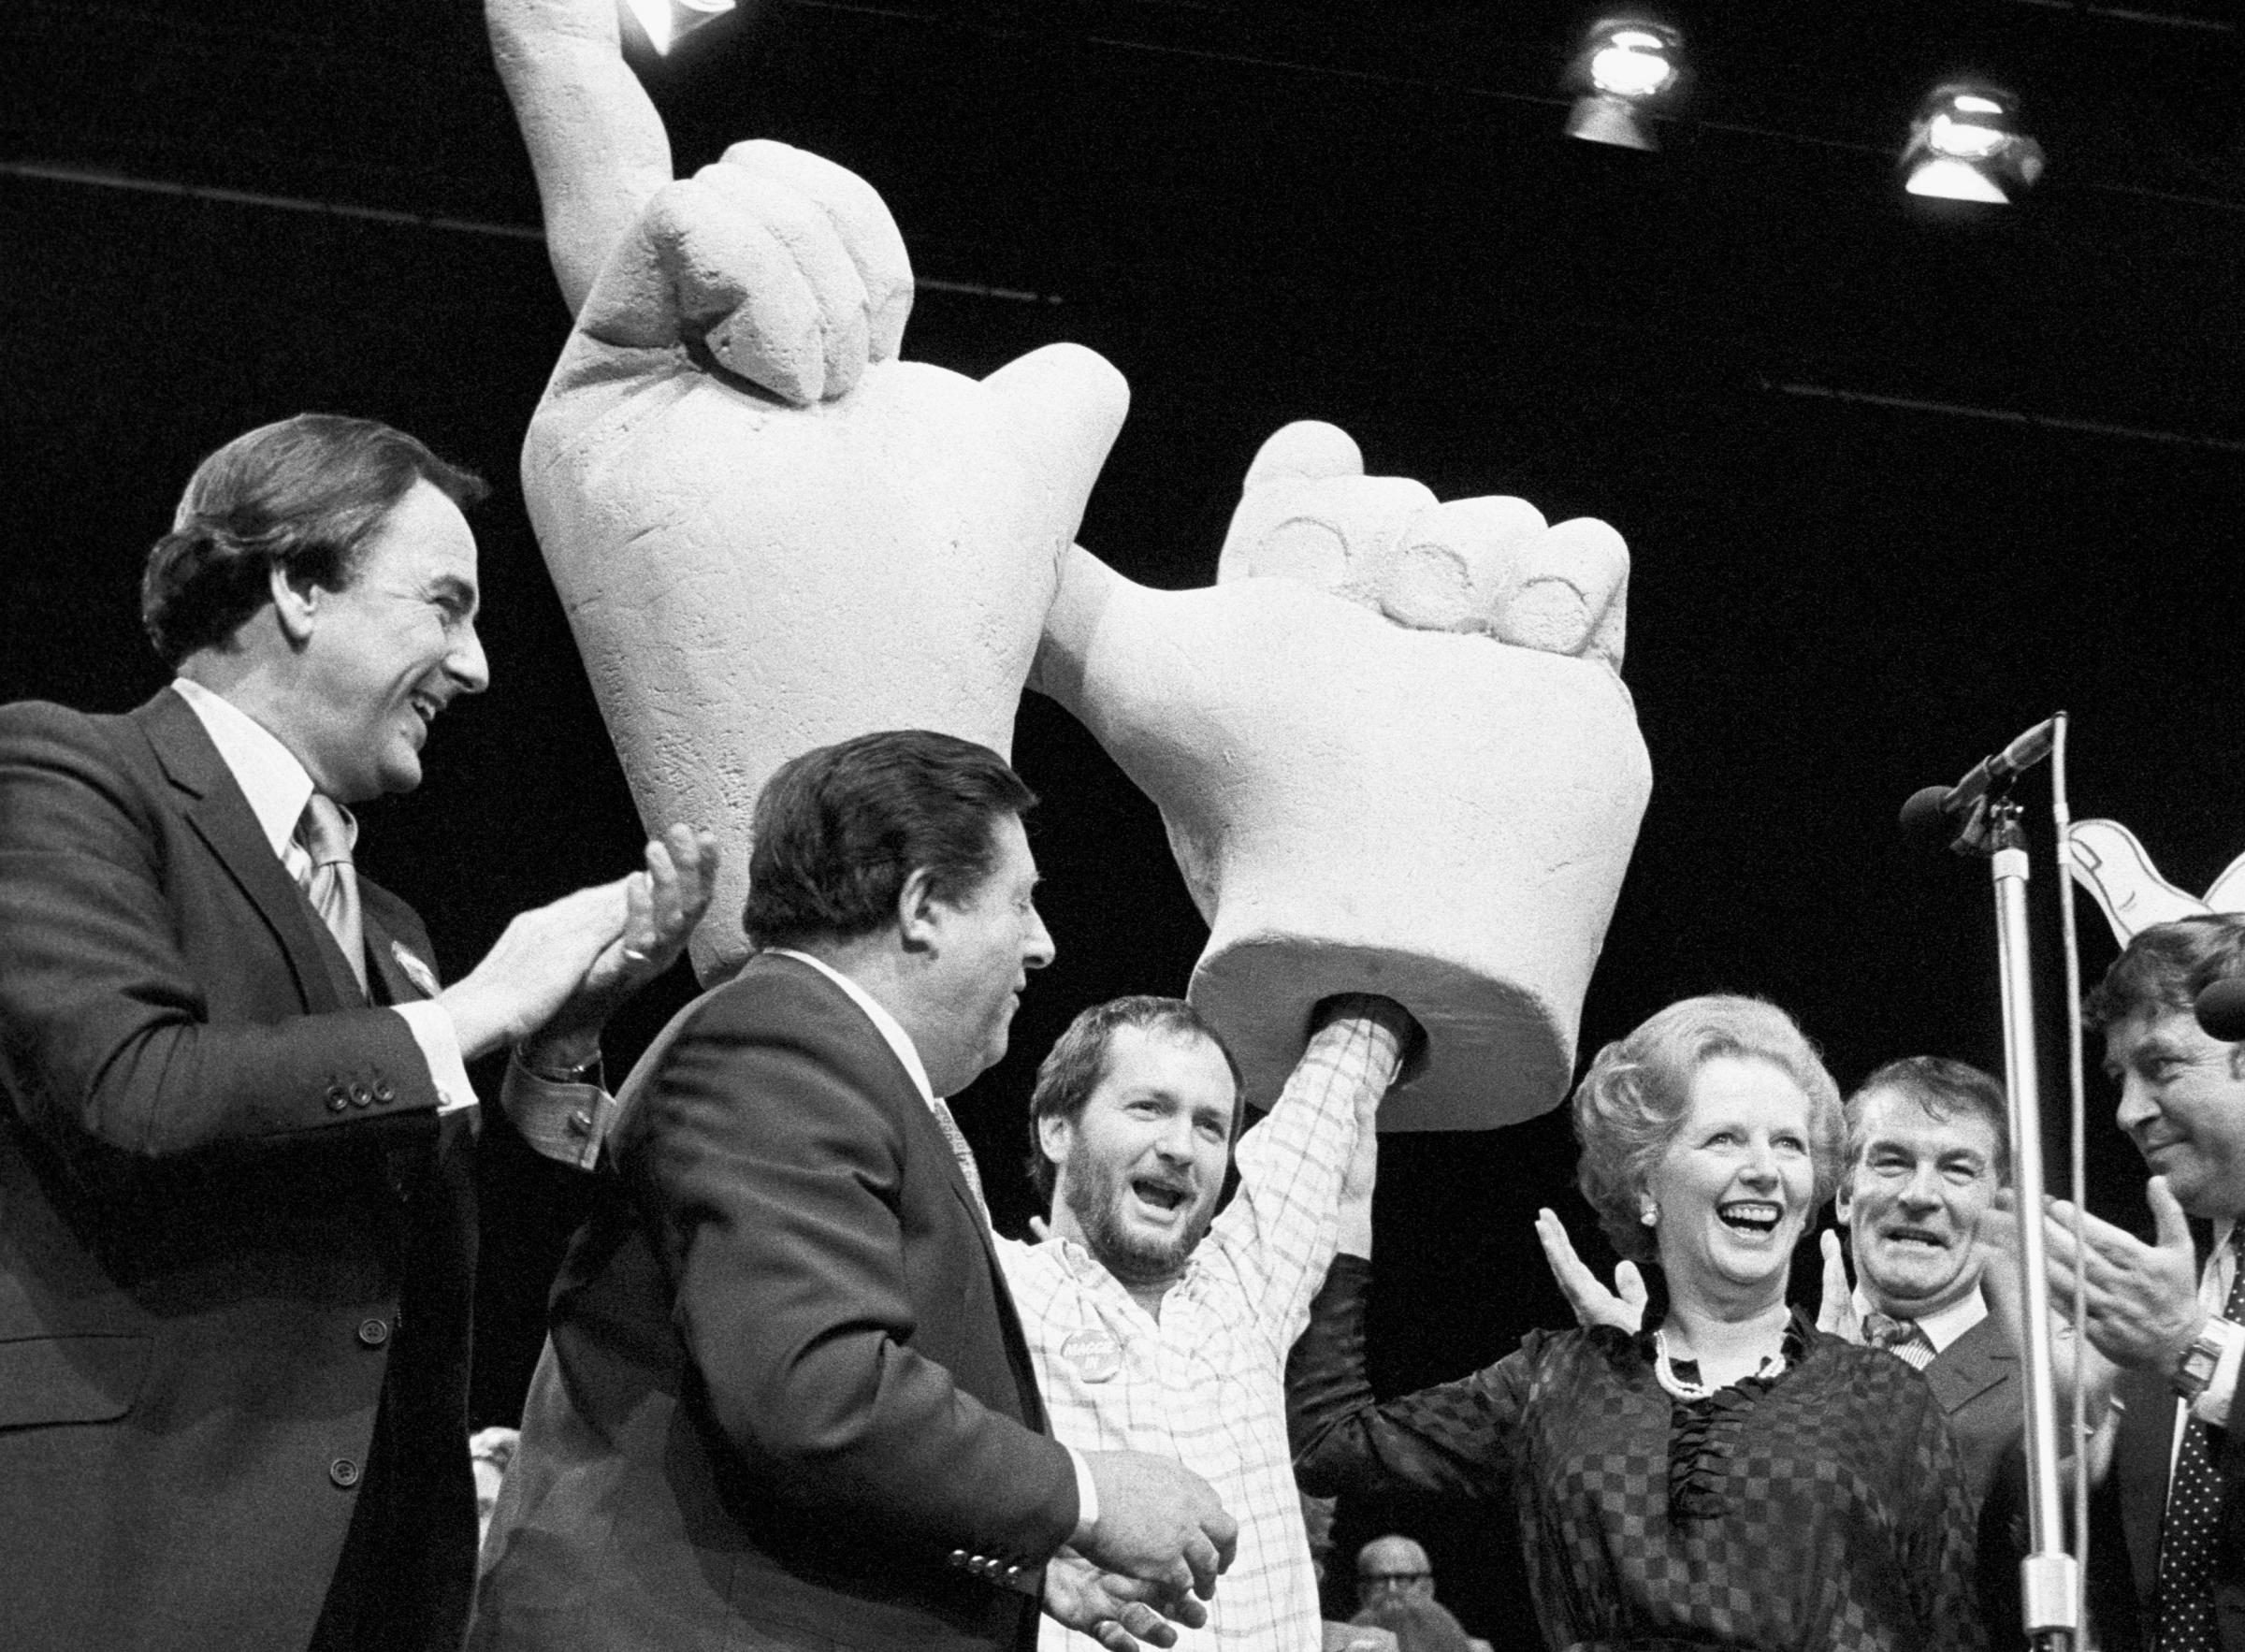 Comedian Kenny Everett gave a prescient take on Conservative policy in 1983